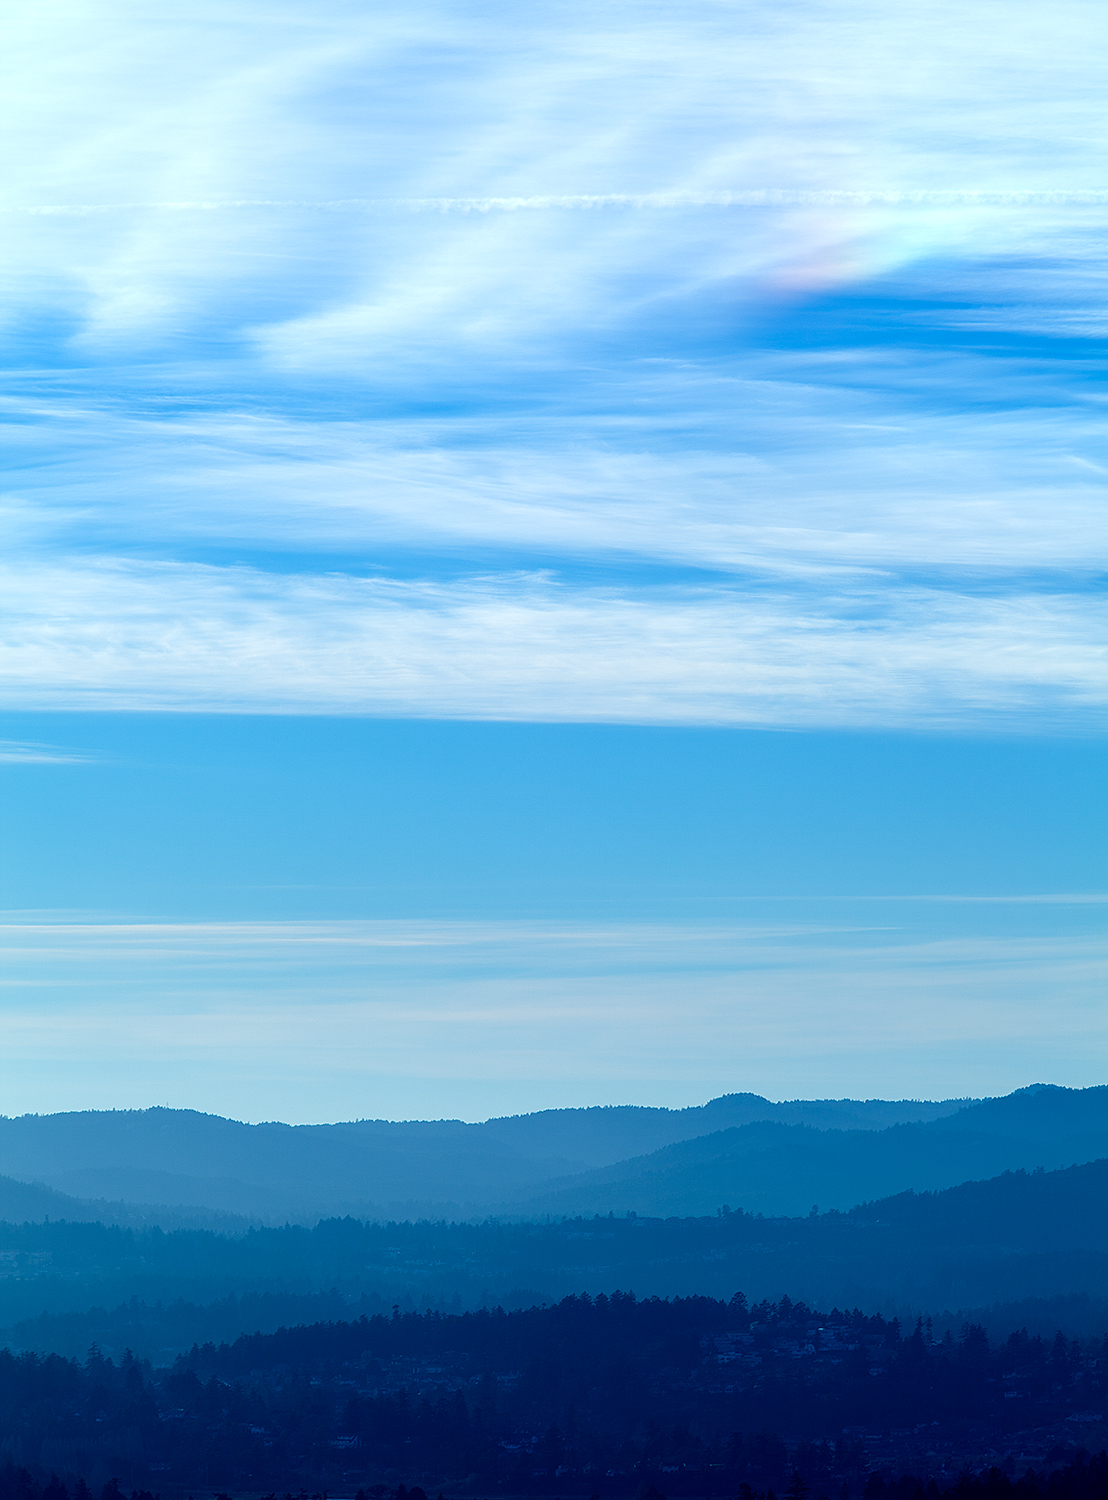 from Mt Doug, playing around with tone mapping.